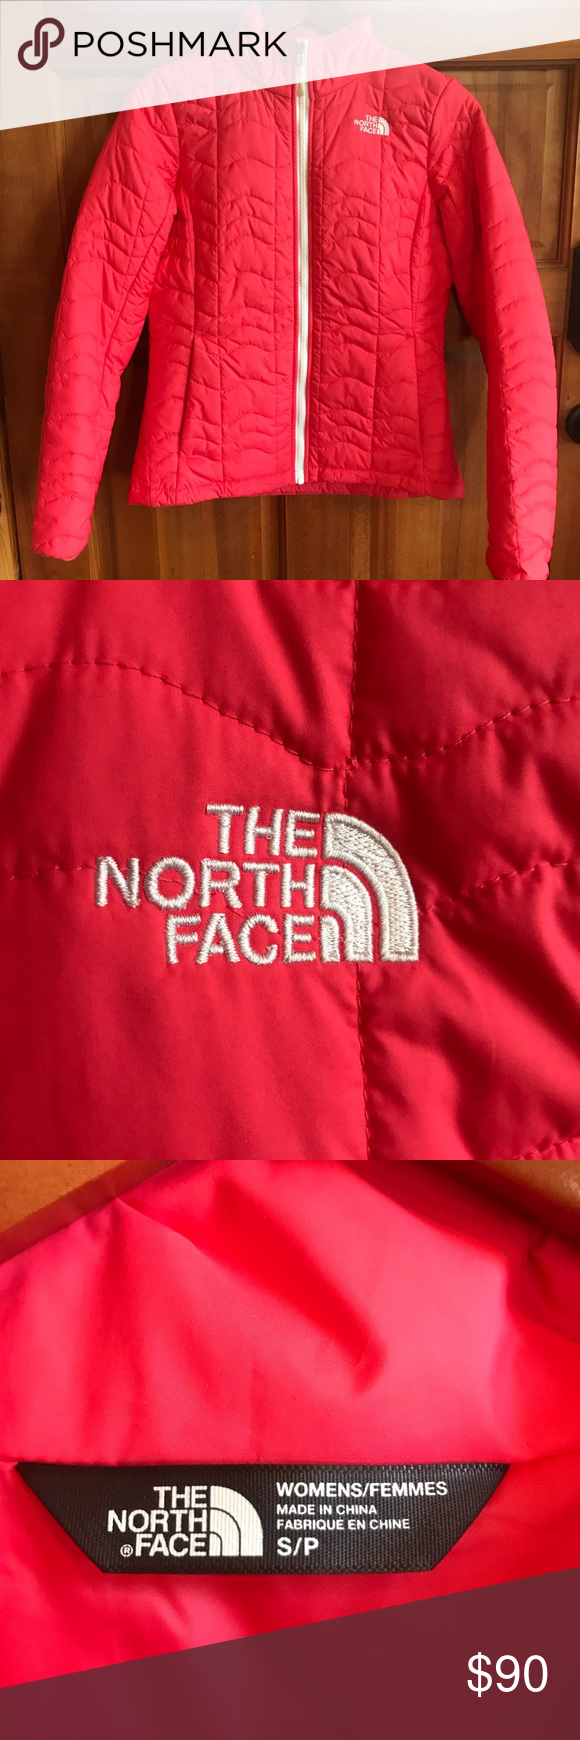 Size S Hot Pink North Face Puffer Jacket This Jacket Is A True Hot Pink The Zipper Is White As Well North Face Puffer Jacket Pink North Face Clothes Design [ 1740 x 580 Pixel ]